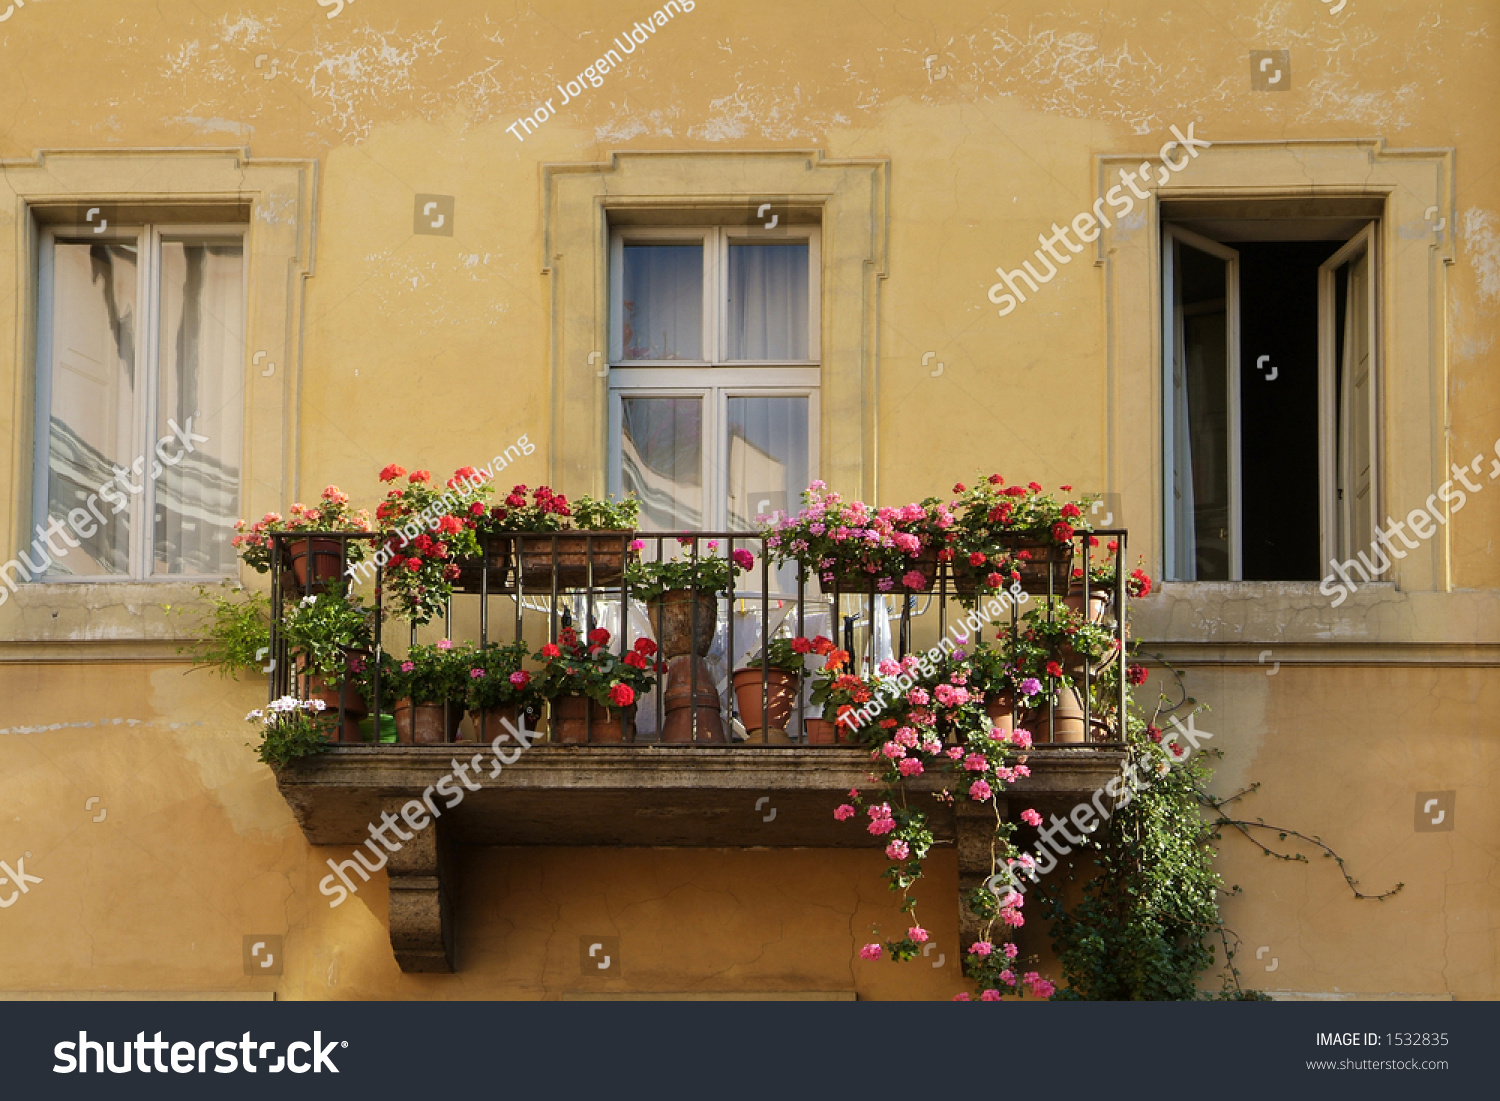 Darmowe window flowers obrazy i pakiety zdjec - freeimages.c.